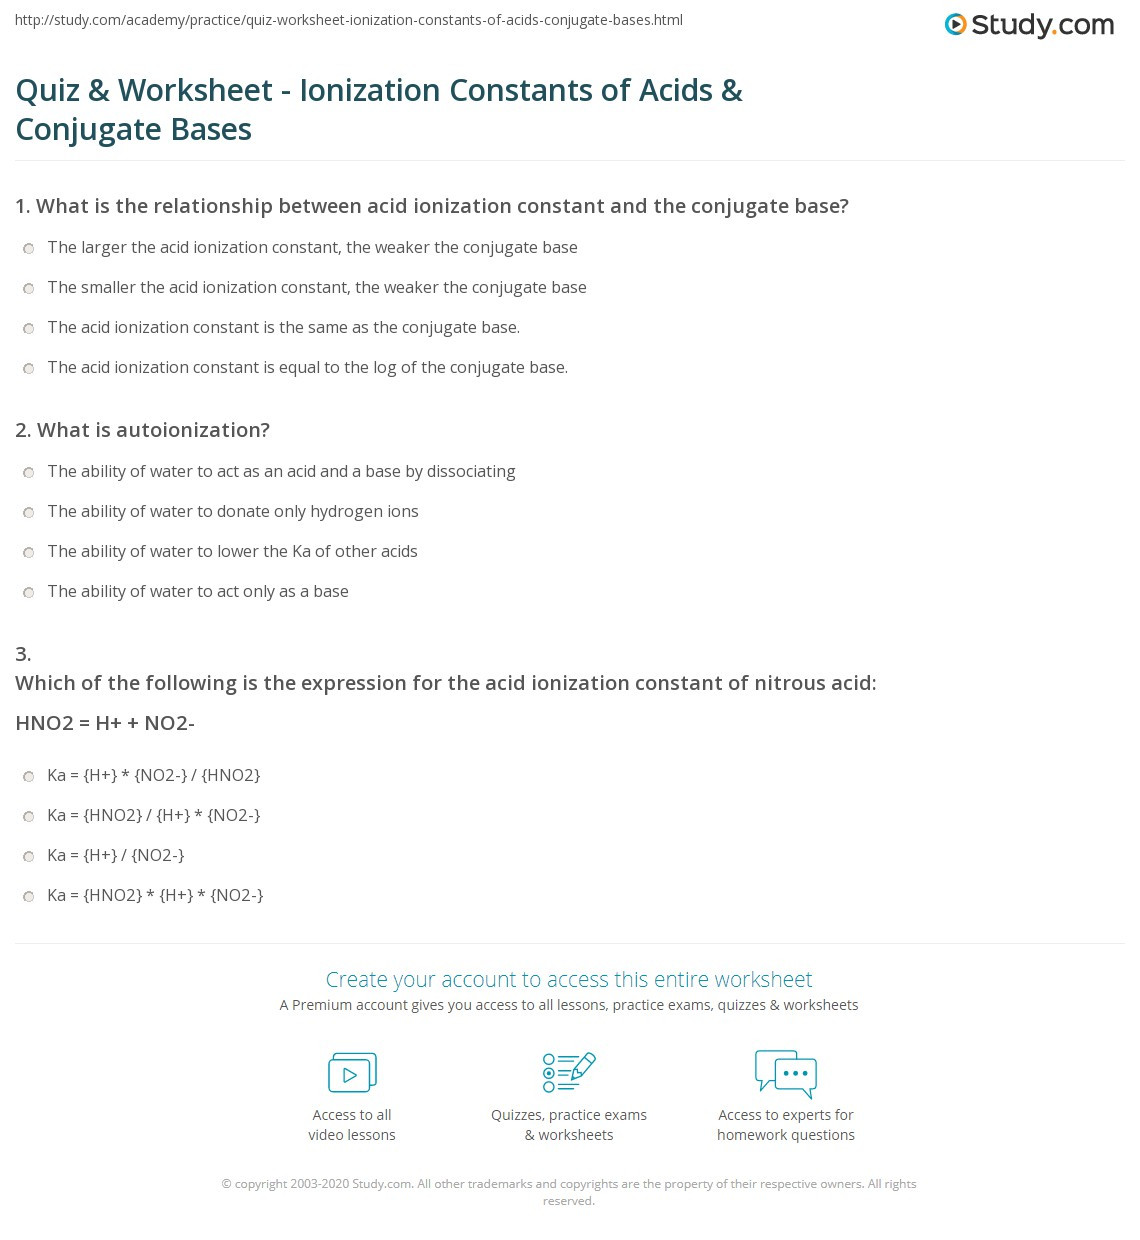 Acid and Bases Worksheet Answers